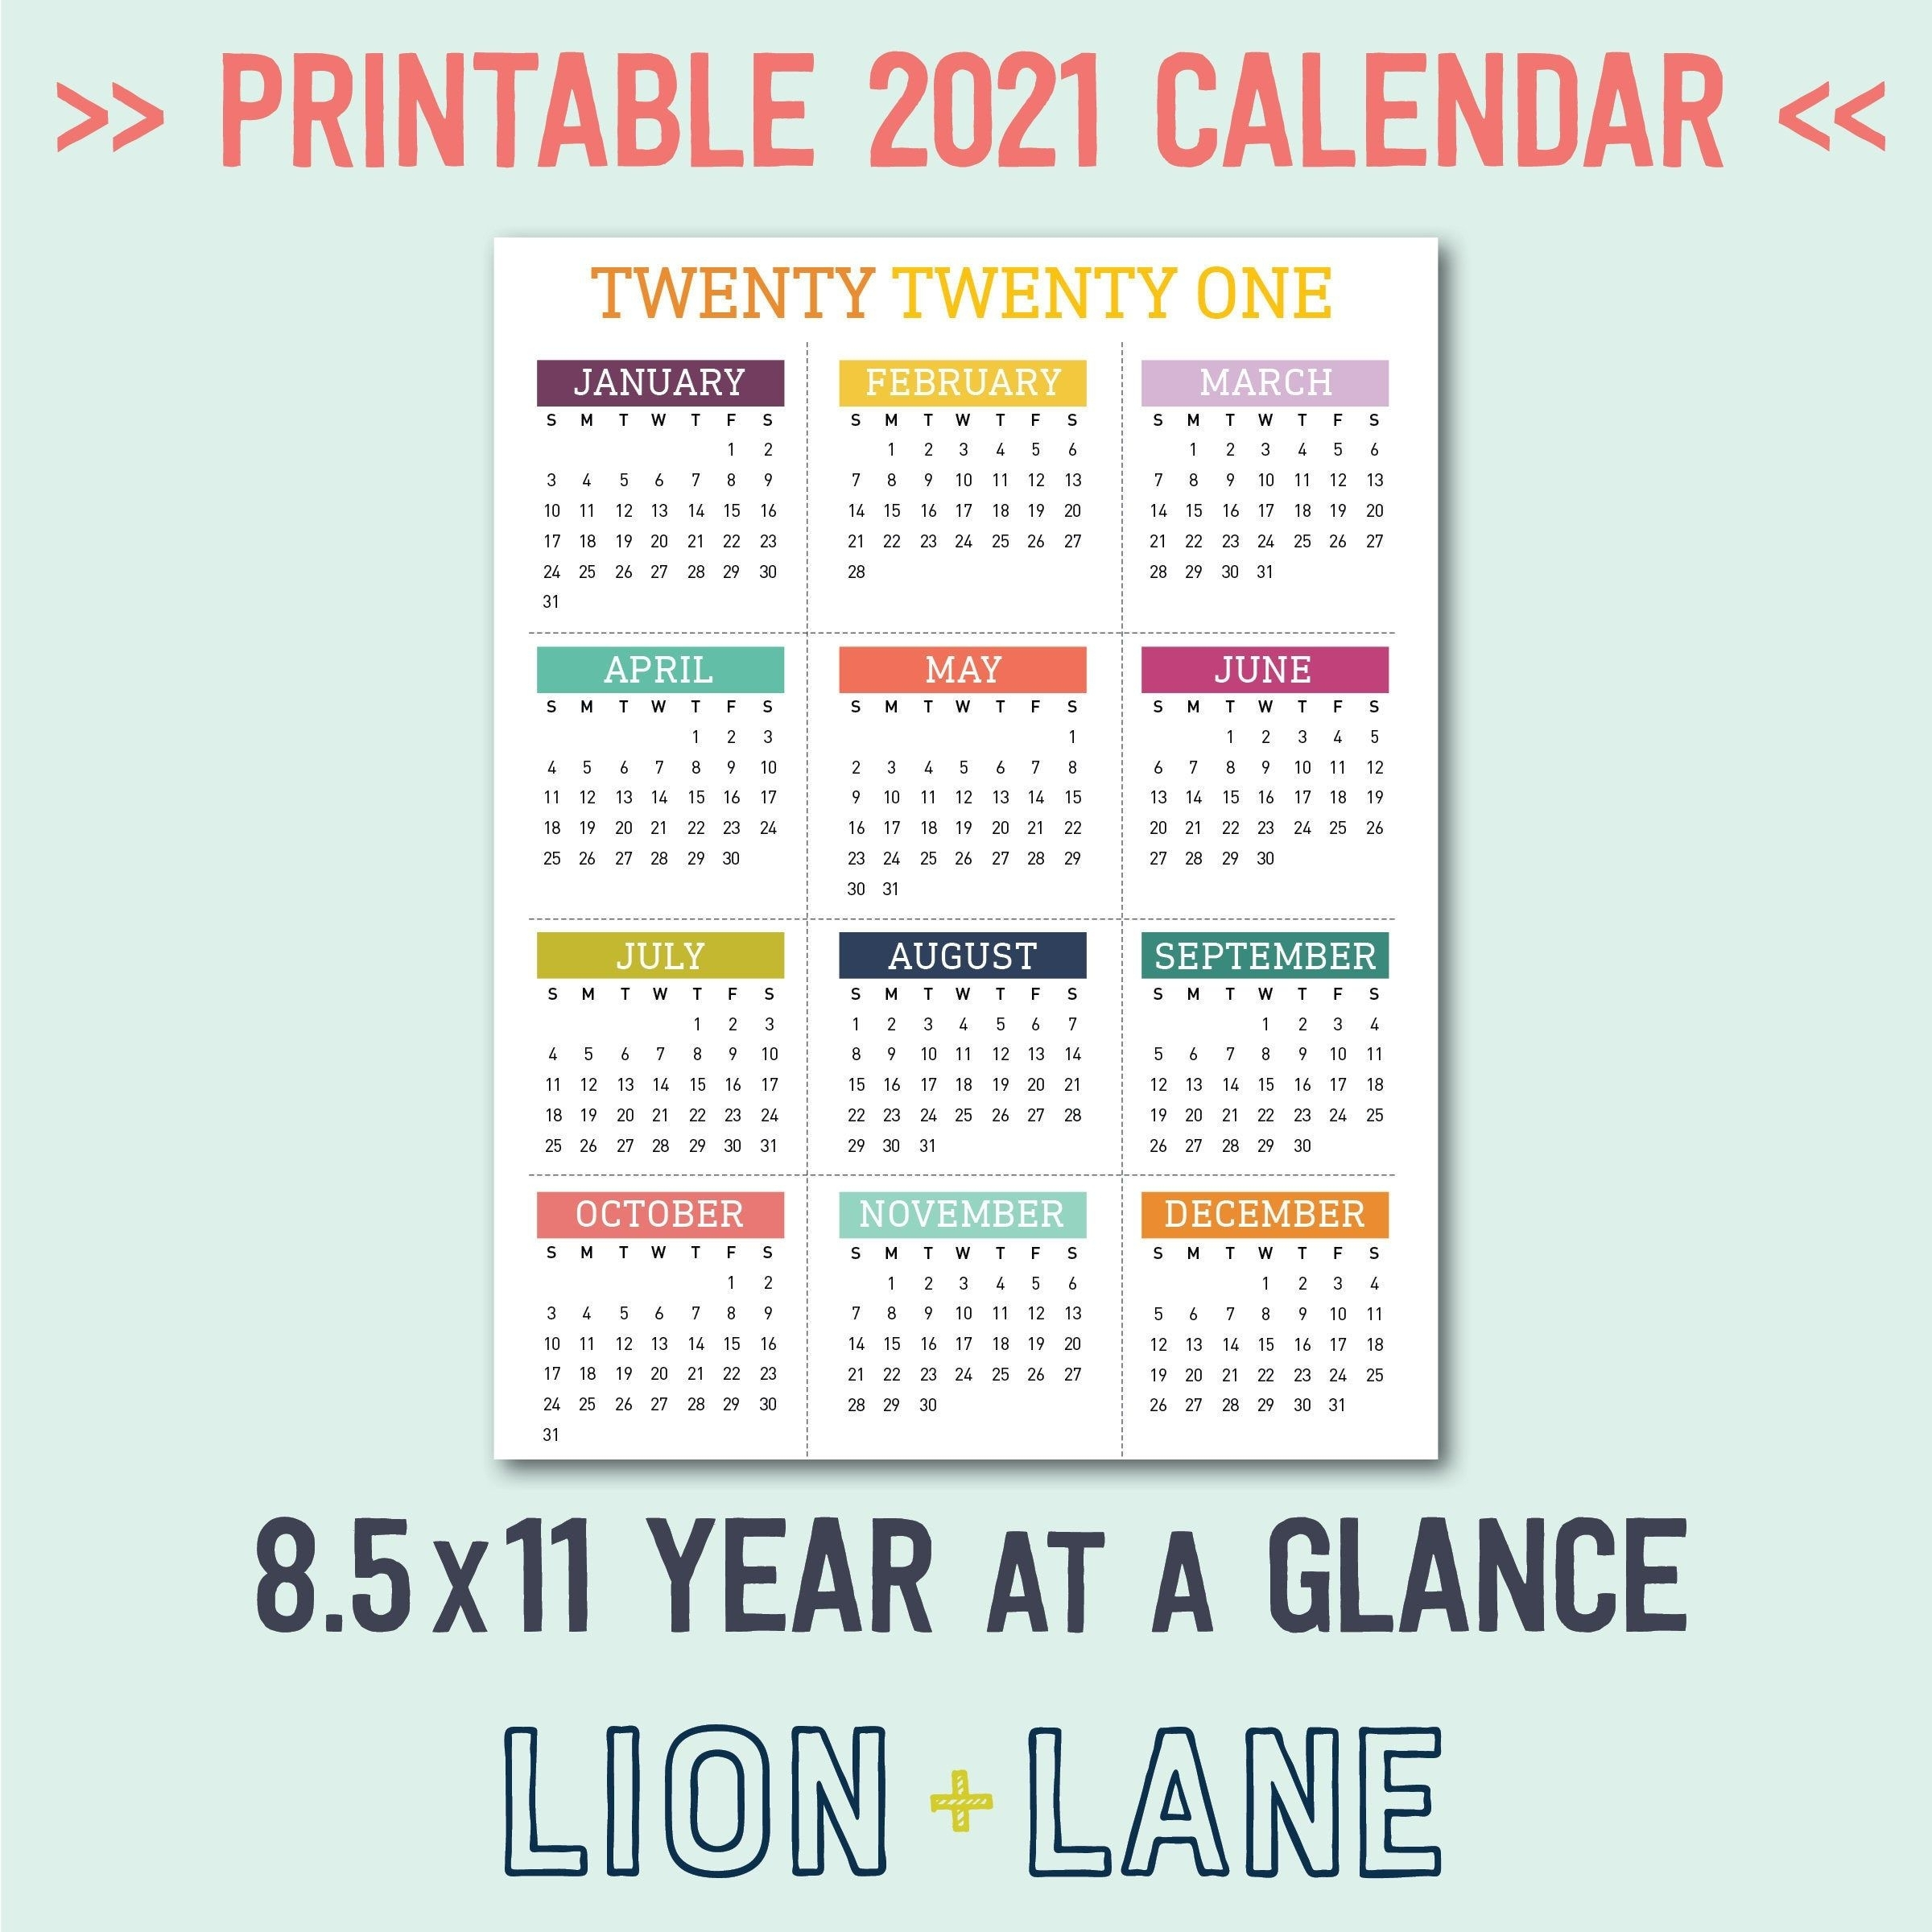 2021 Printable Calendar Year At A Glance 85X11 Letter